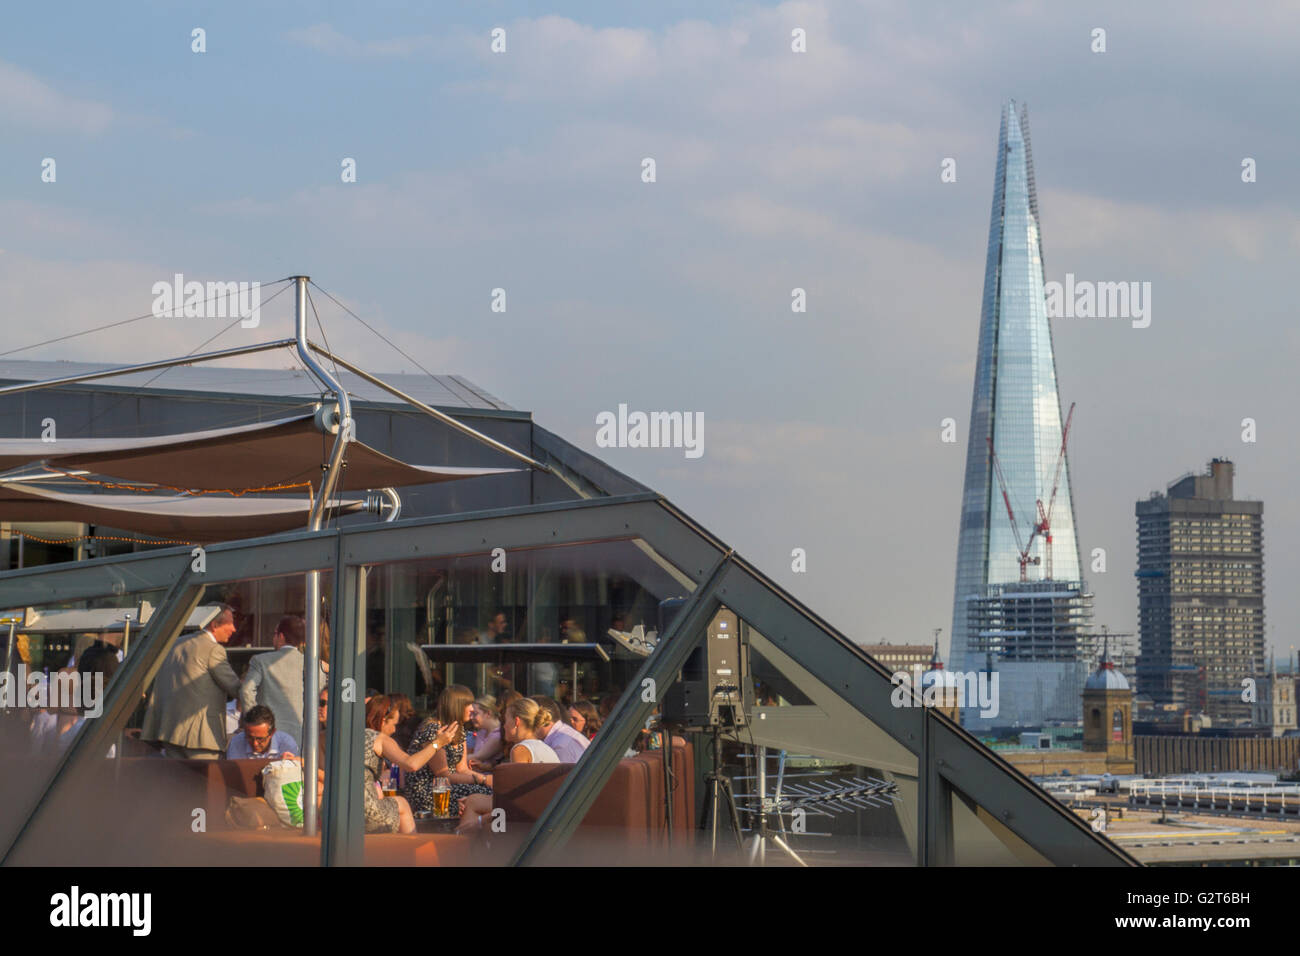 Diners At  A City Restaurant on the roof of One New Change, With The Shard in The Distance - Stock Image